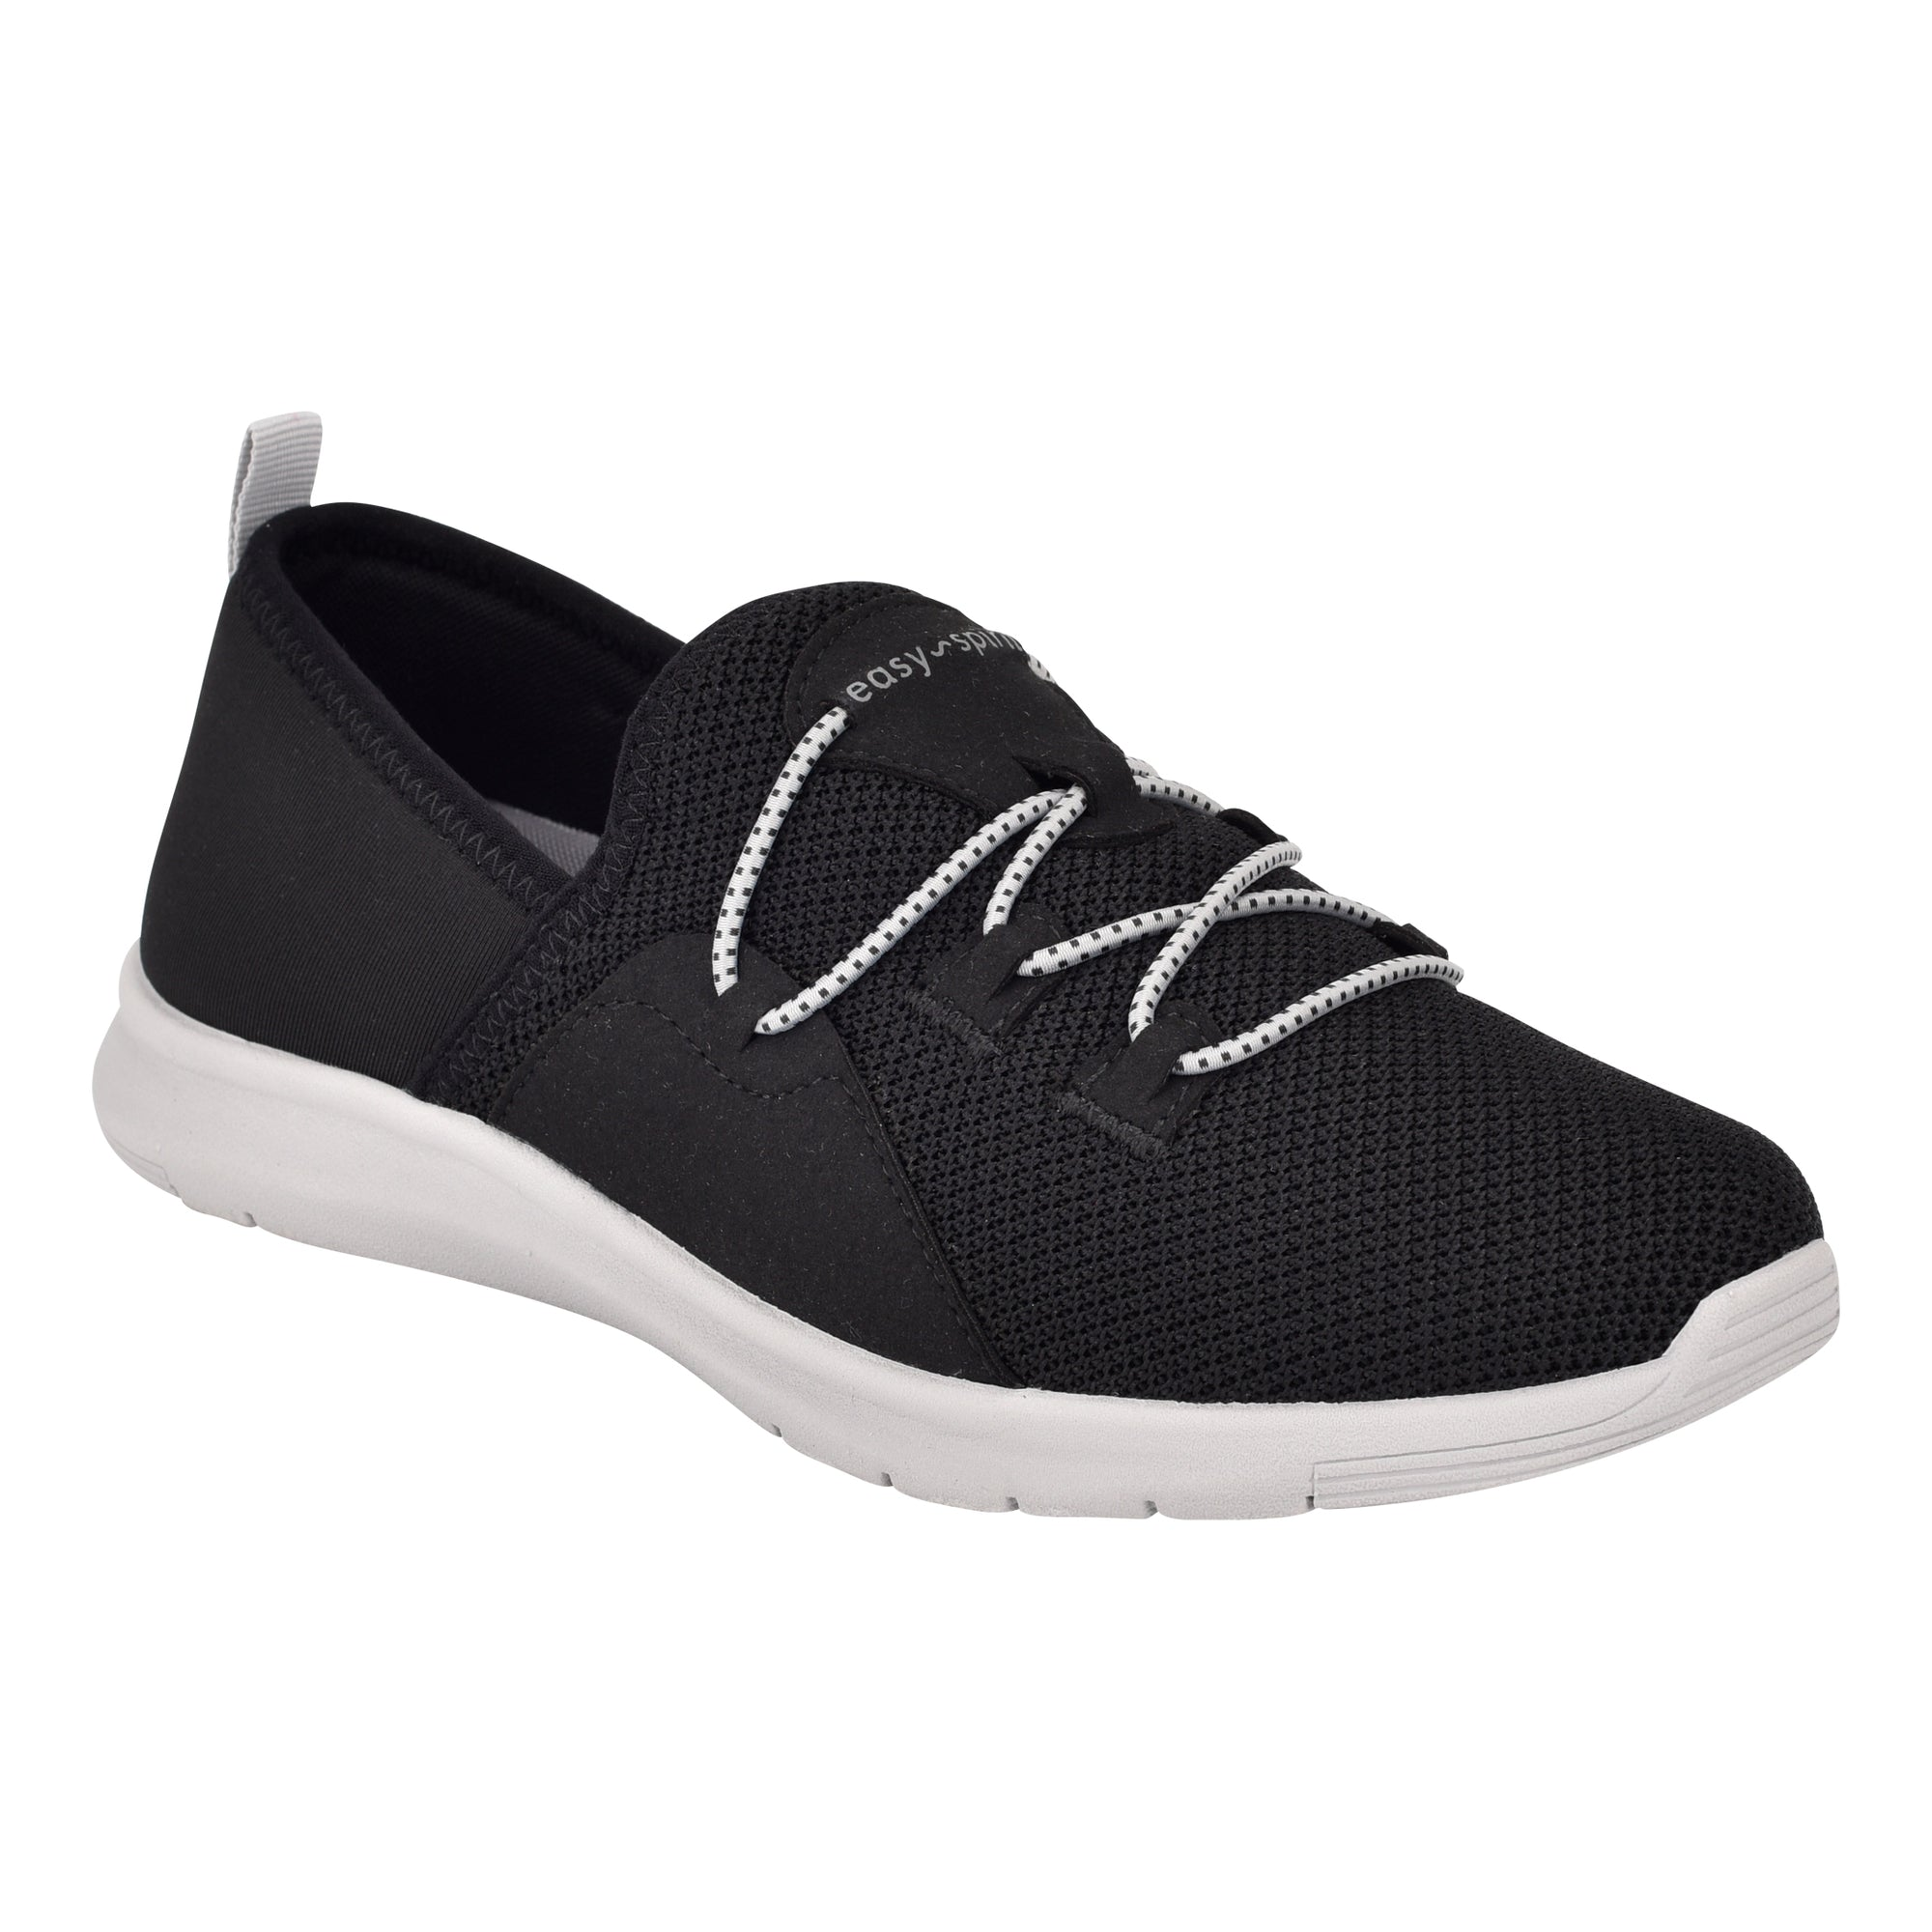 Grae Slip On Walking Shoes